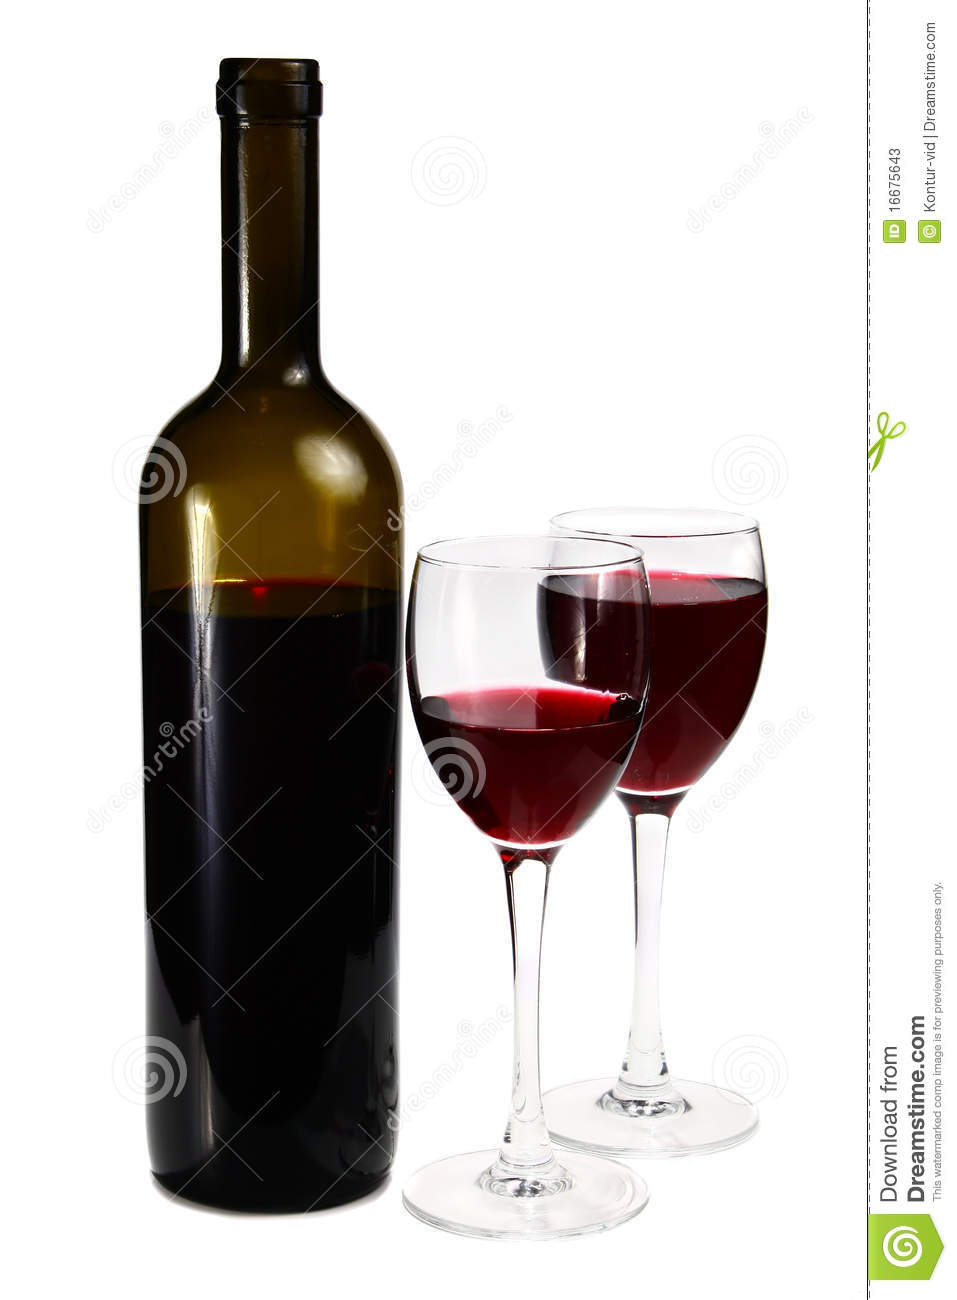 Bottle with red wine and glass stock photos image 16675643 for Wine bottle glass